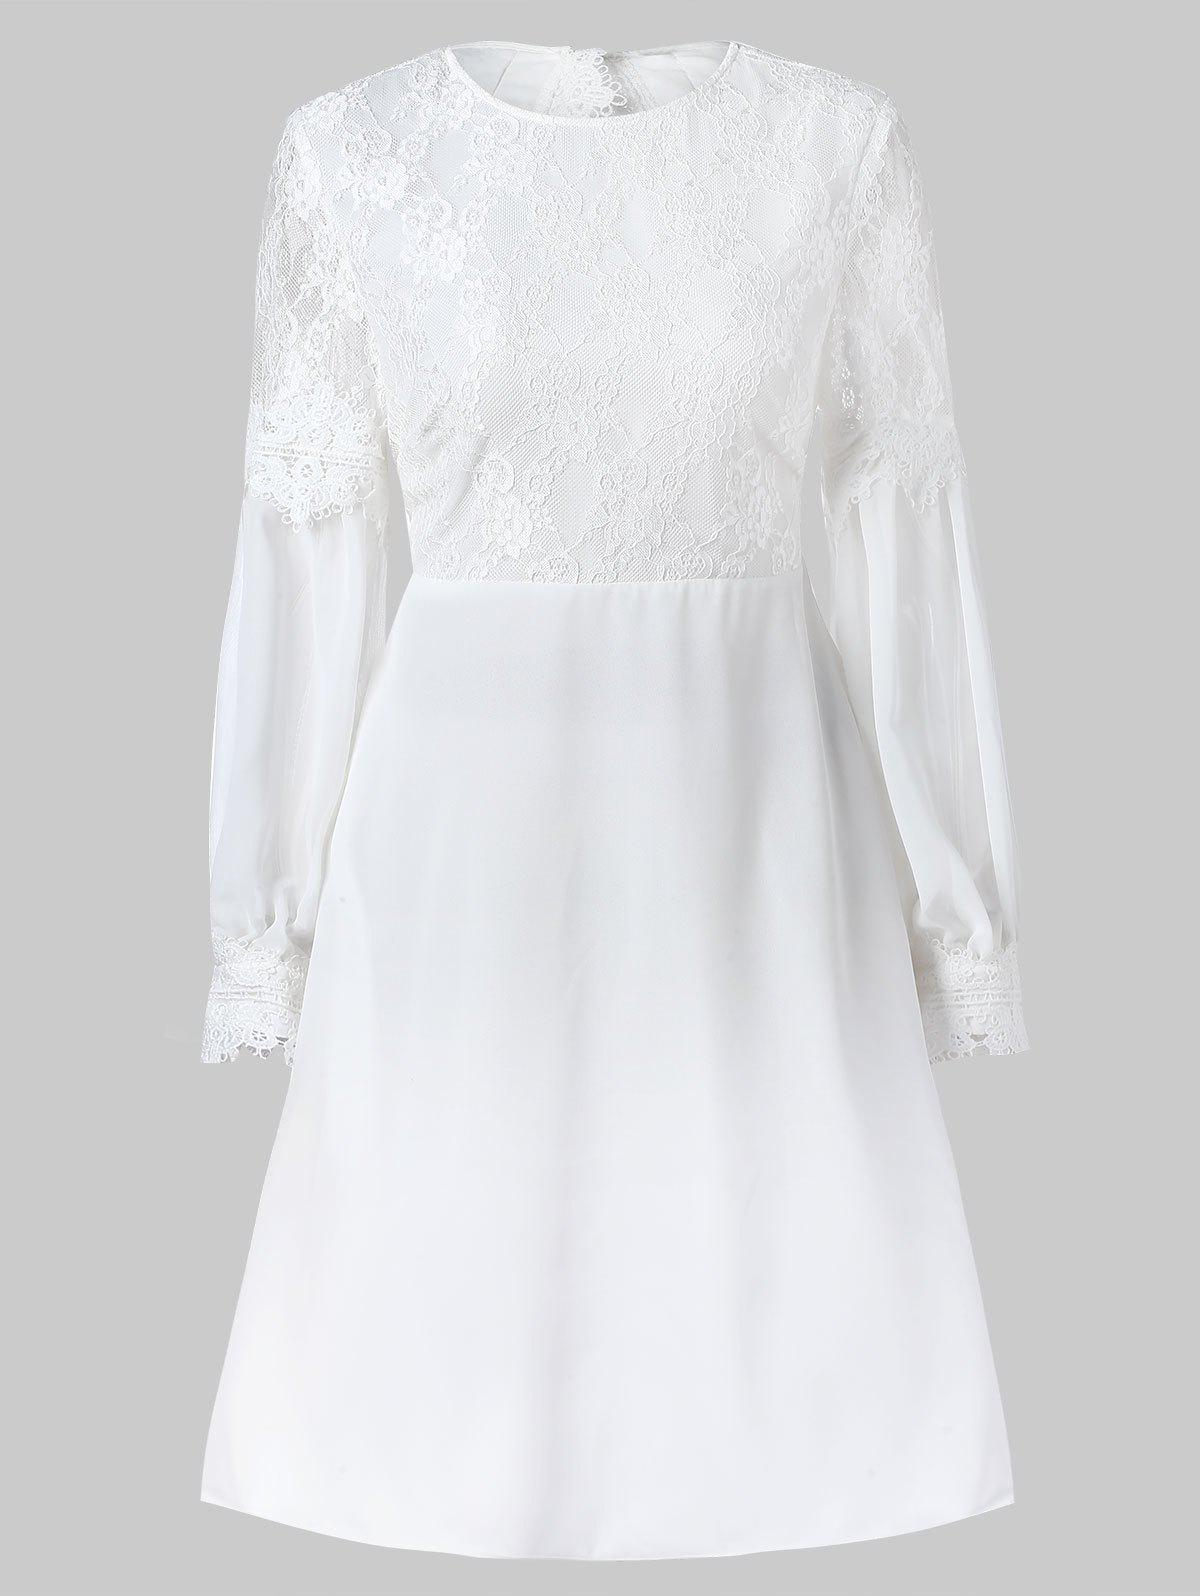 Lace Panel Cut Out Long Sleeve Dress - WHITE XL